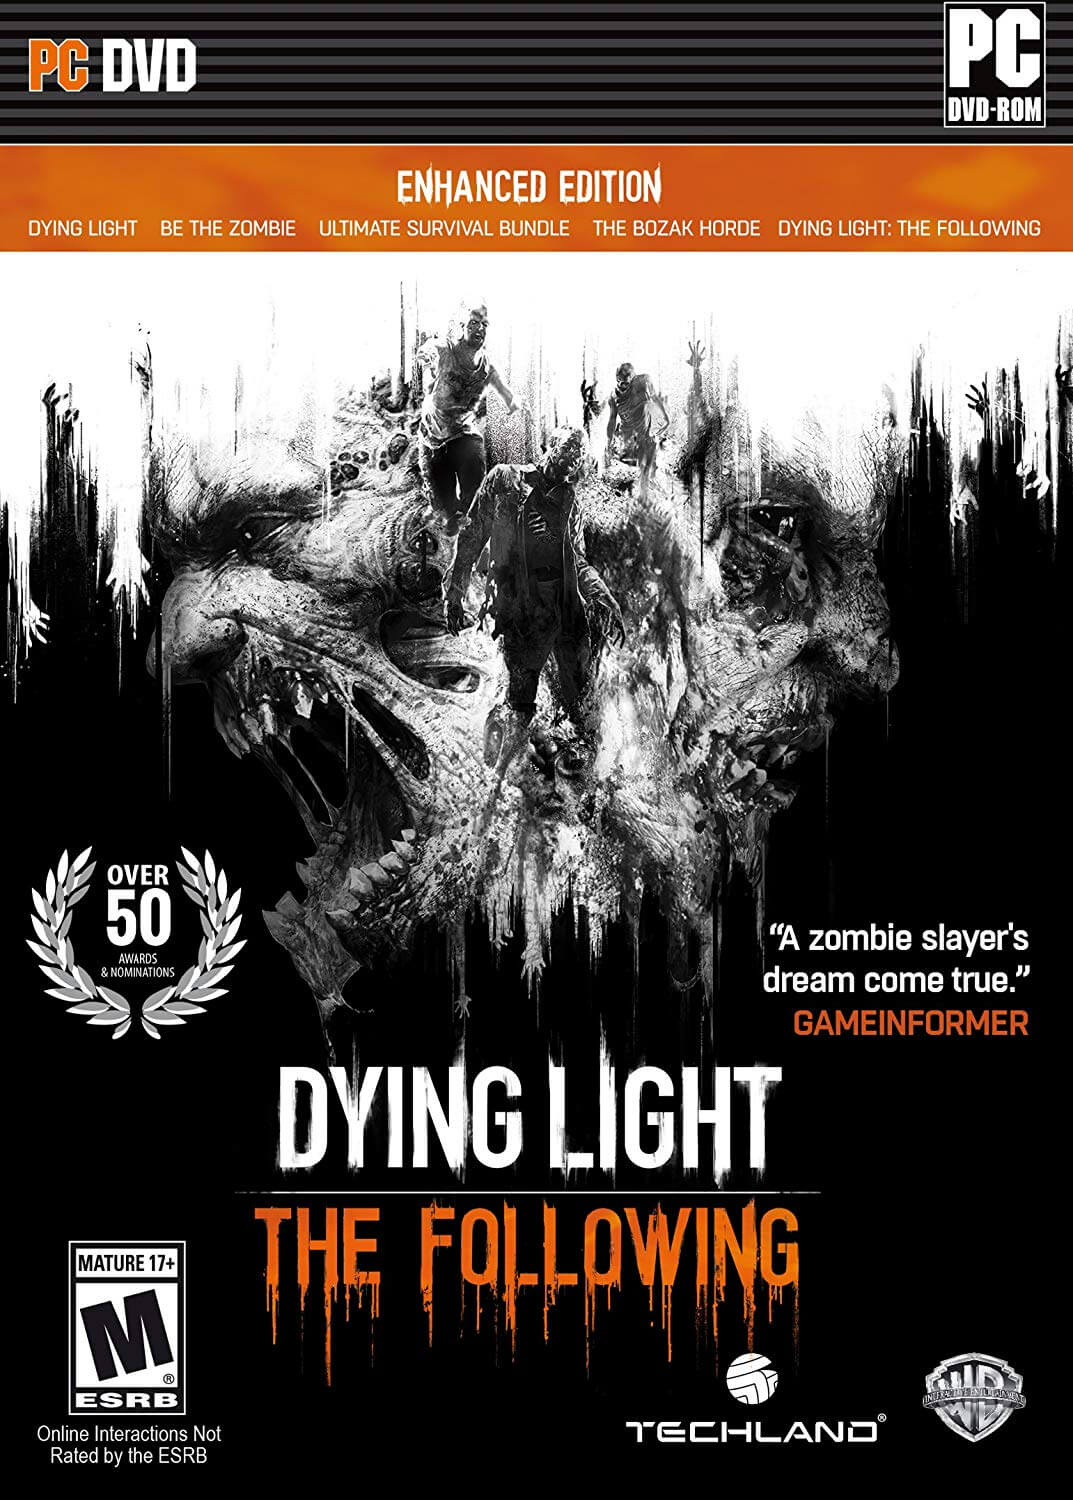 https://img5.downloadha.com/hosein/files/2019/12/Dying-Light-The-Following-Enhanced-Edition-pc-cover-large.jpg